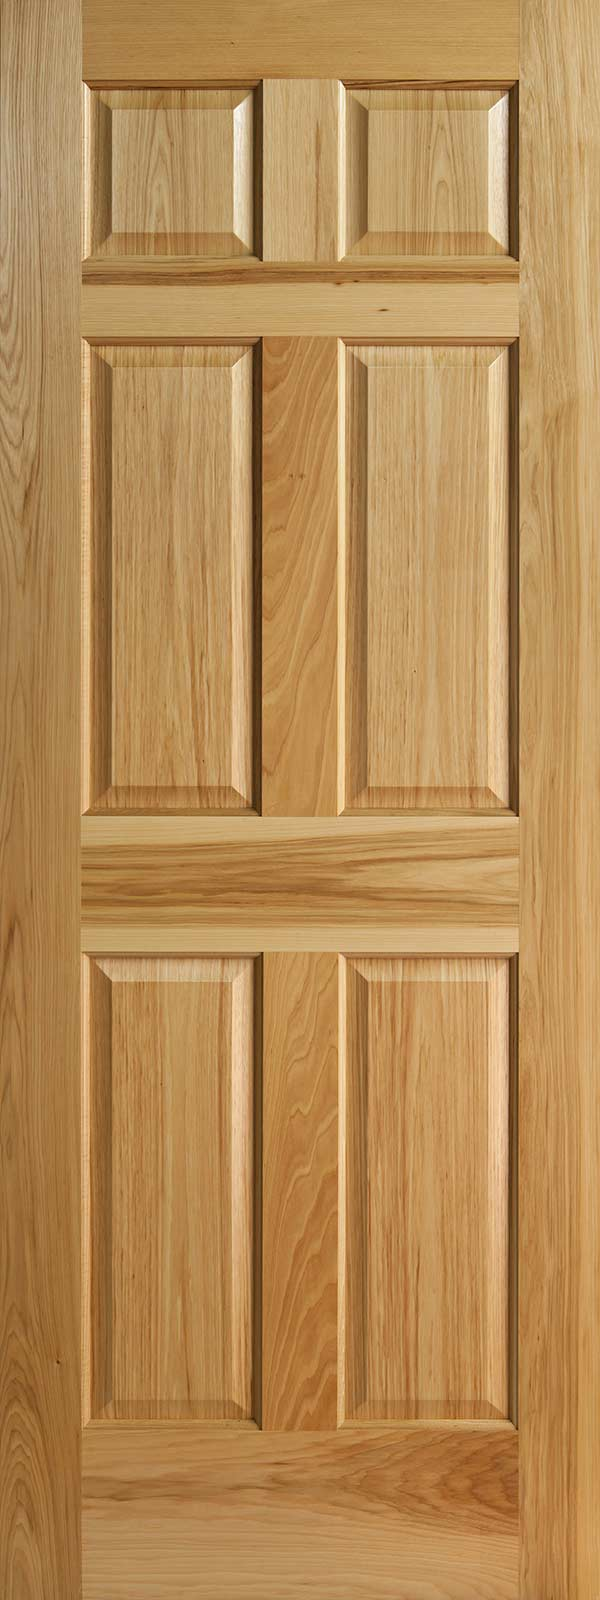 Elegant Hickory 6 Panel Interior Doors With Raised Panels